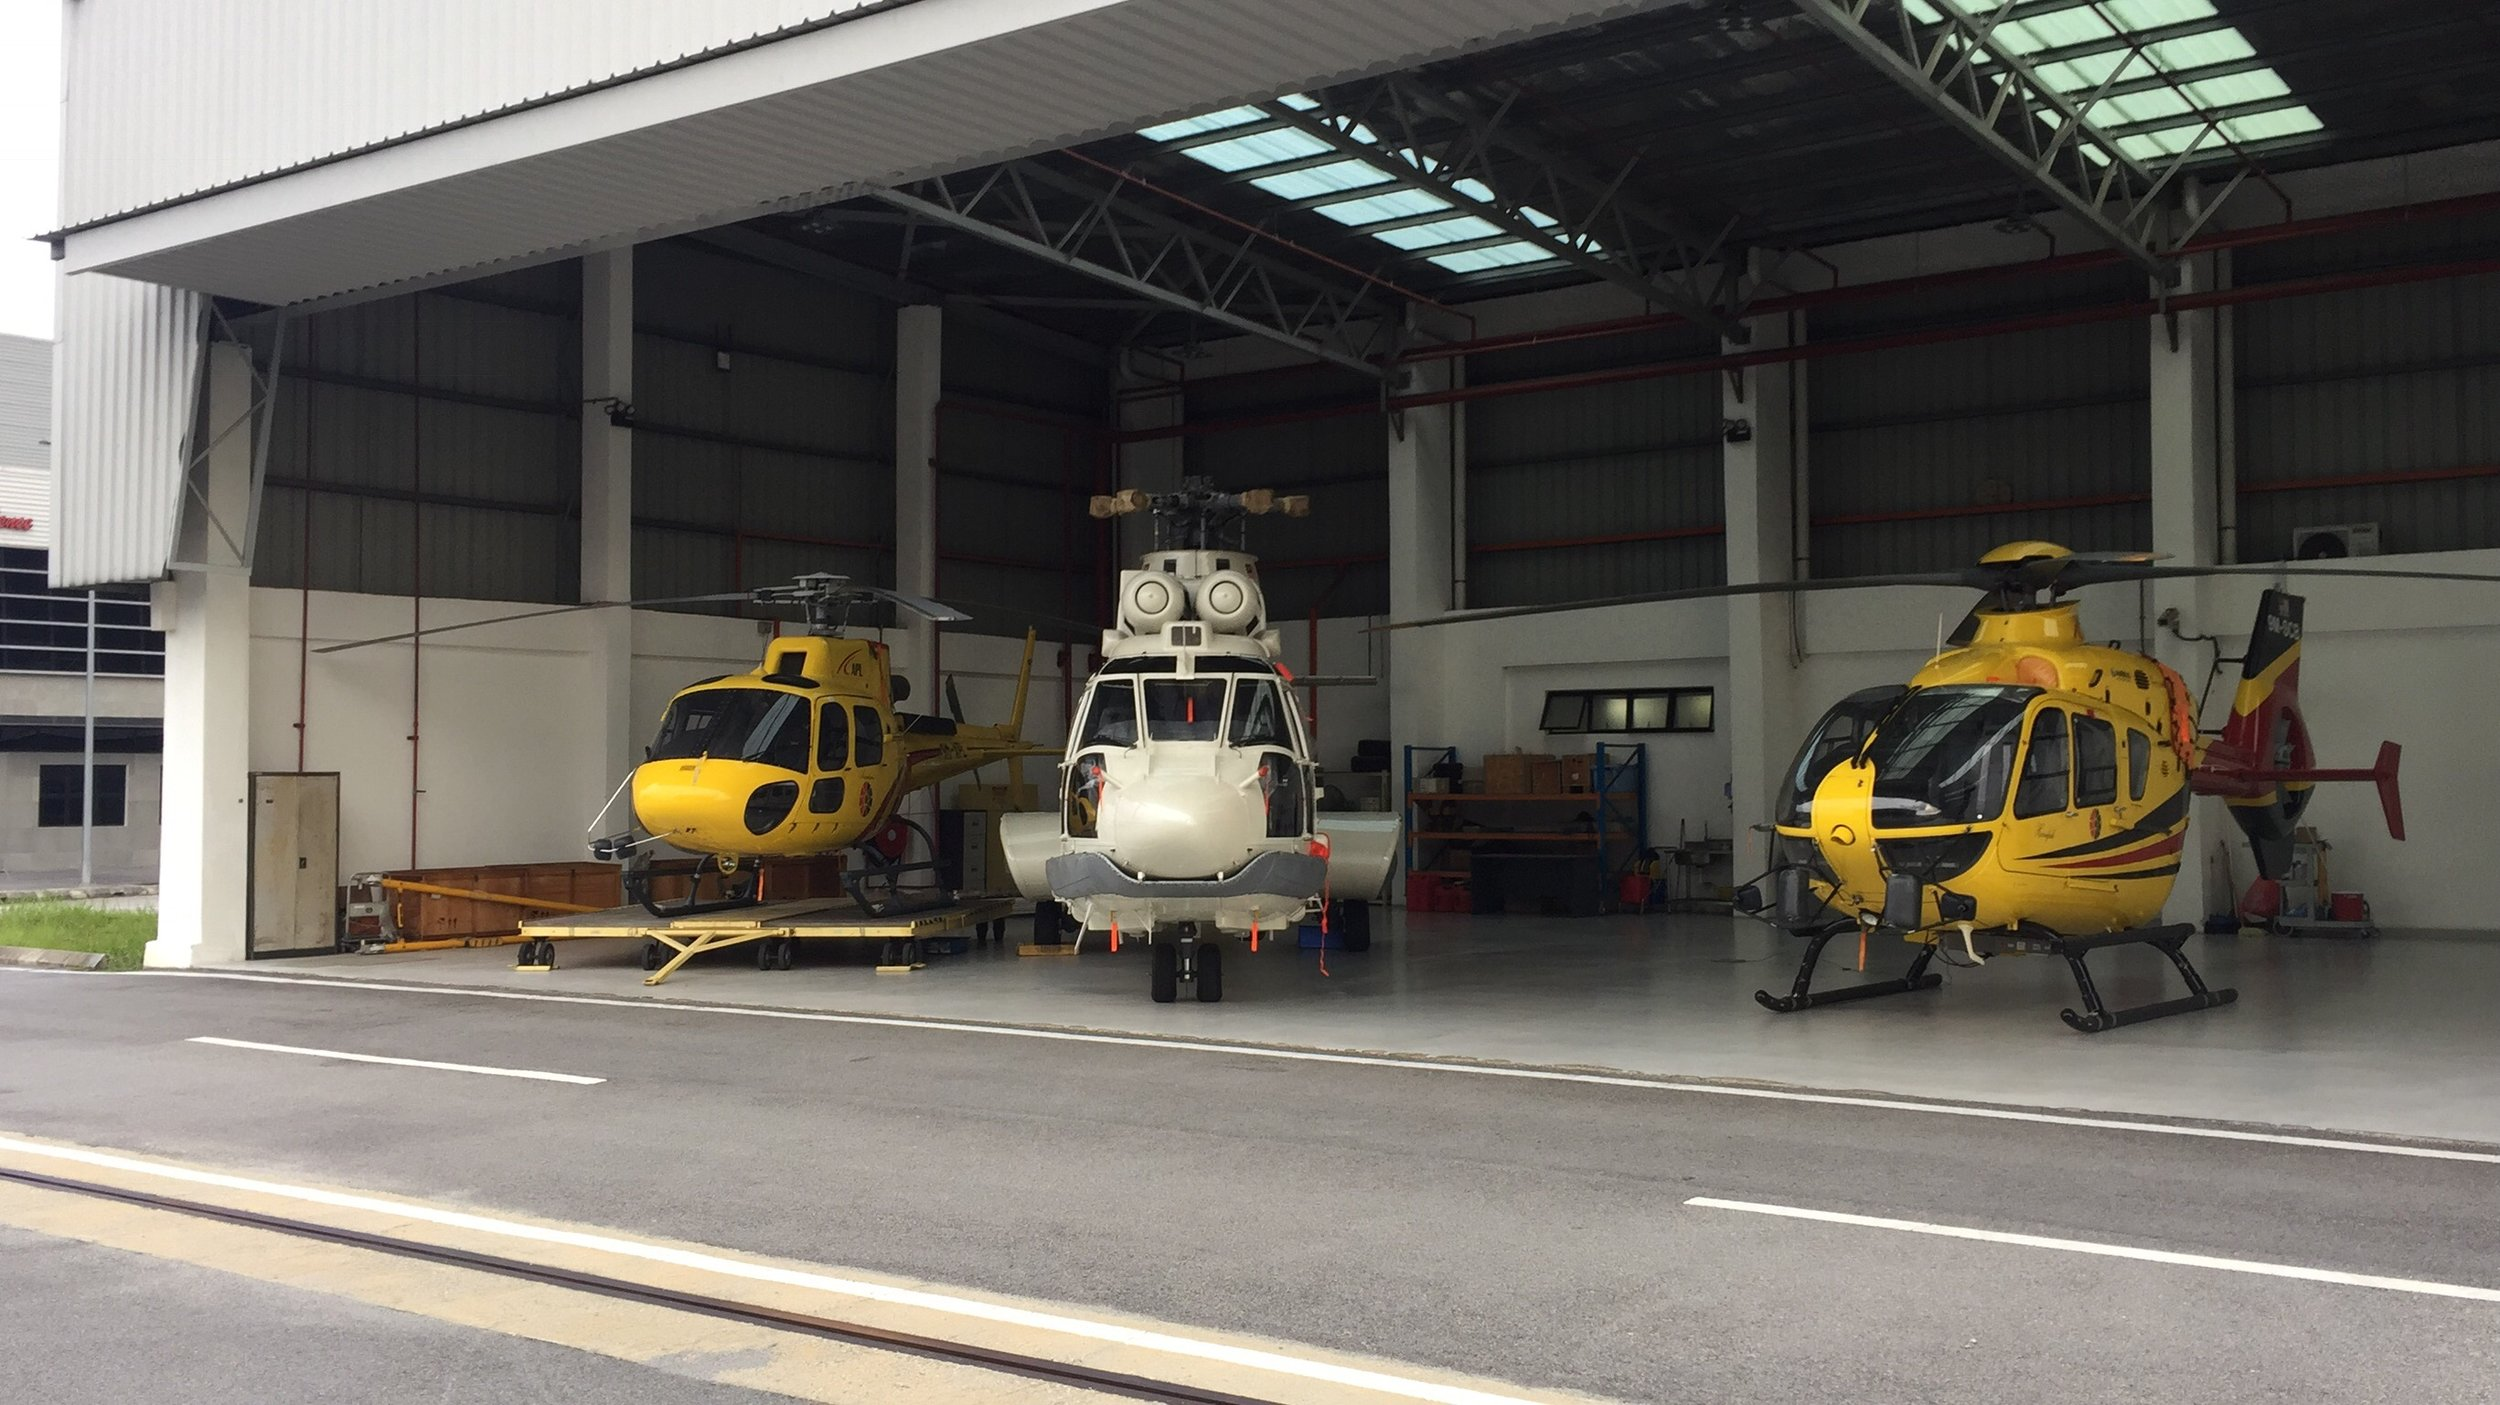 Three helicopter at the Hangar